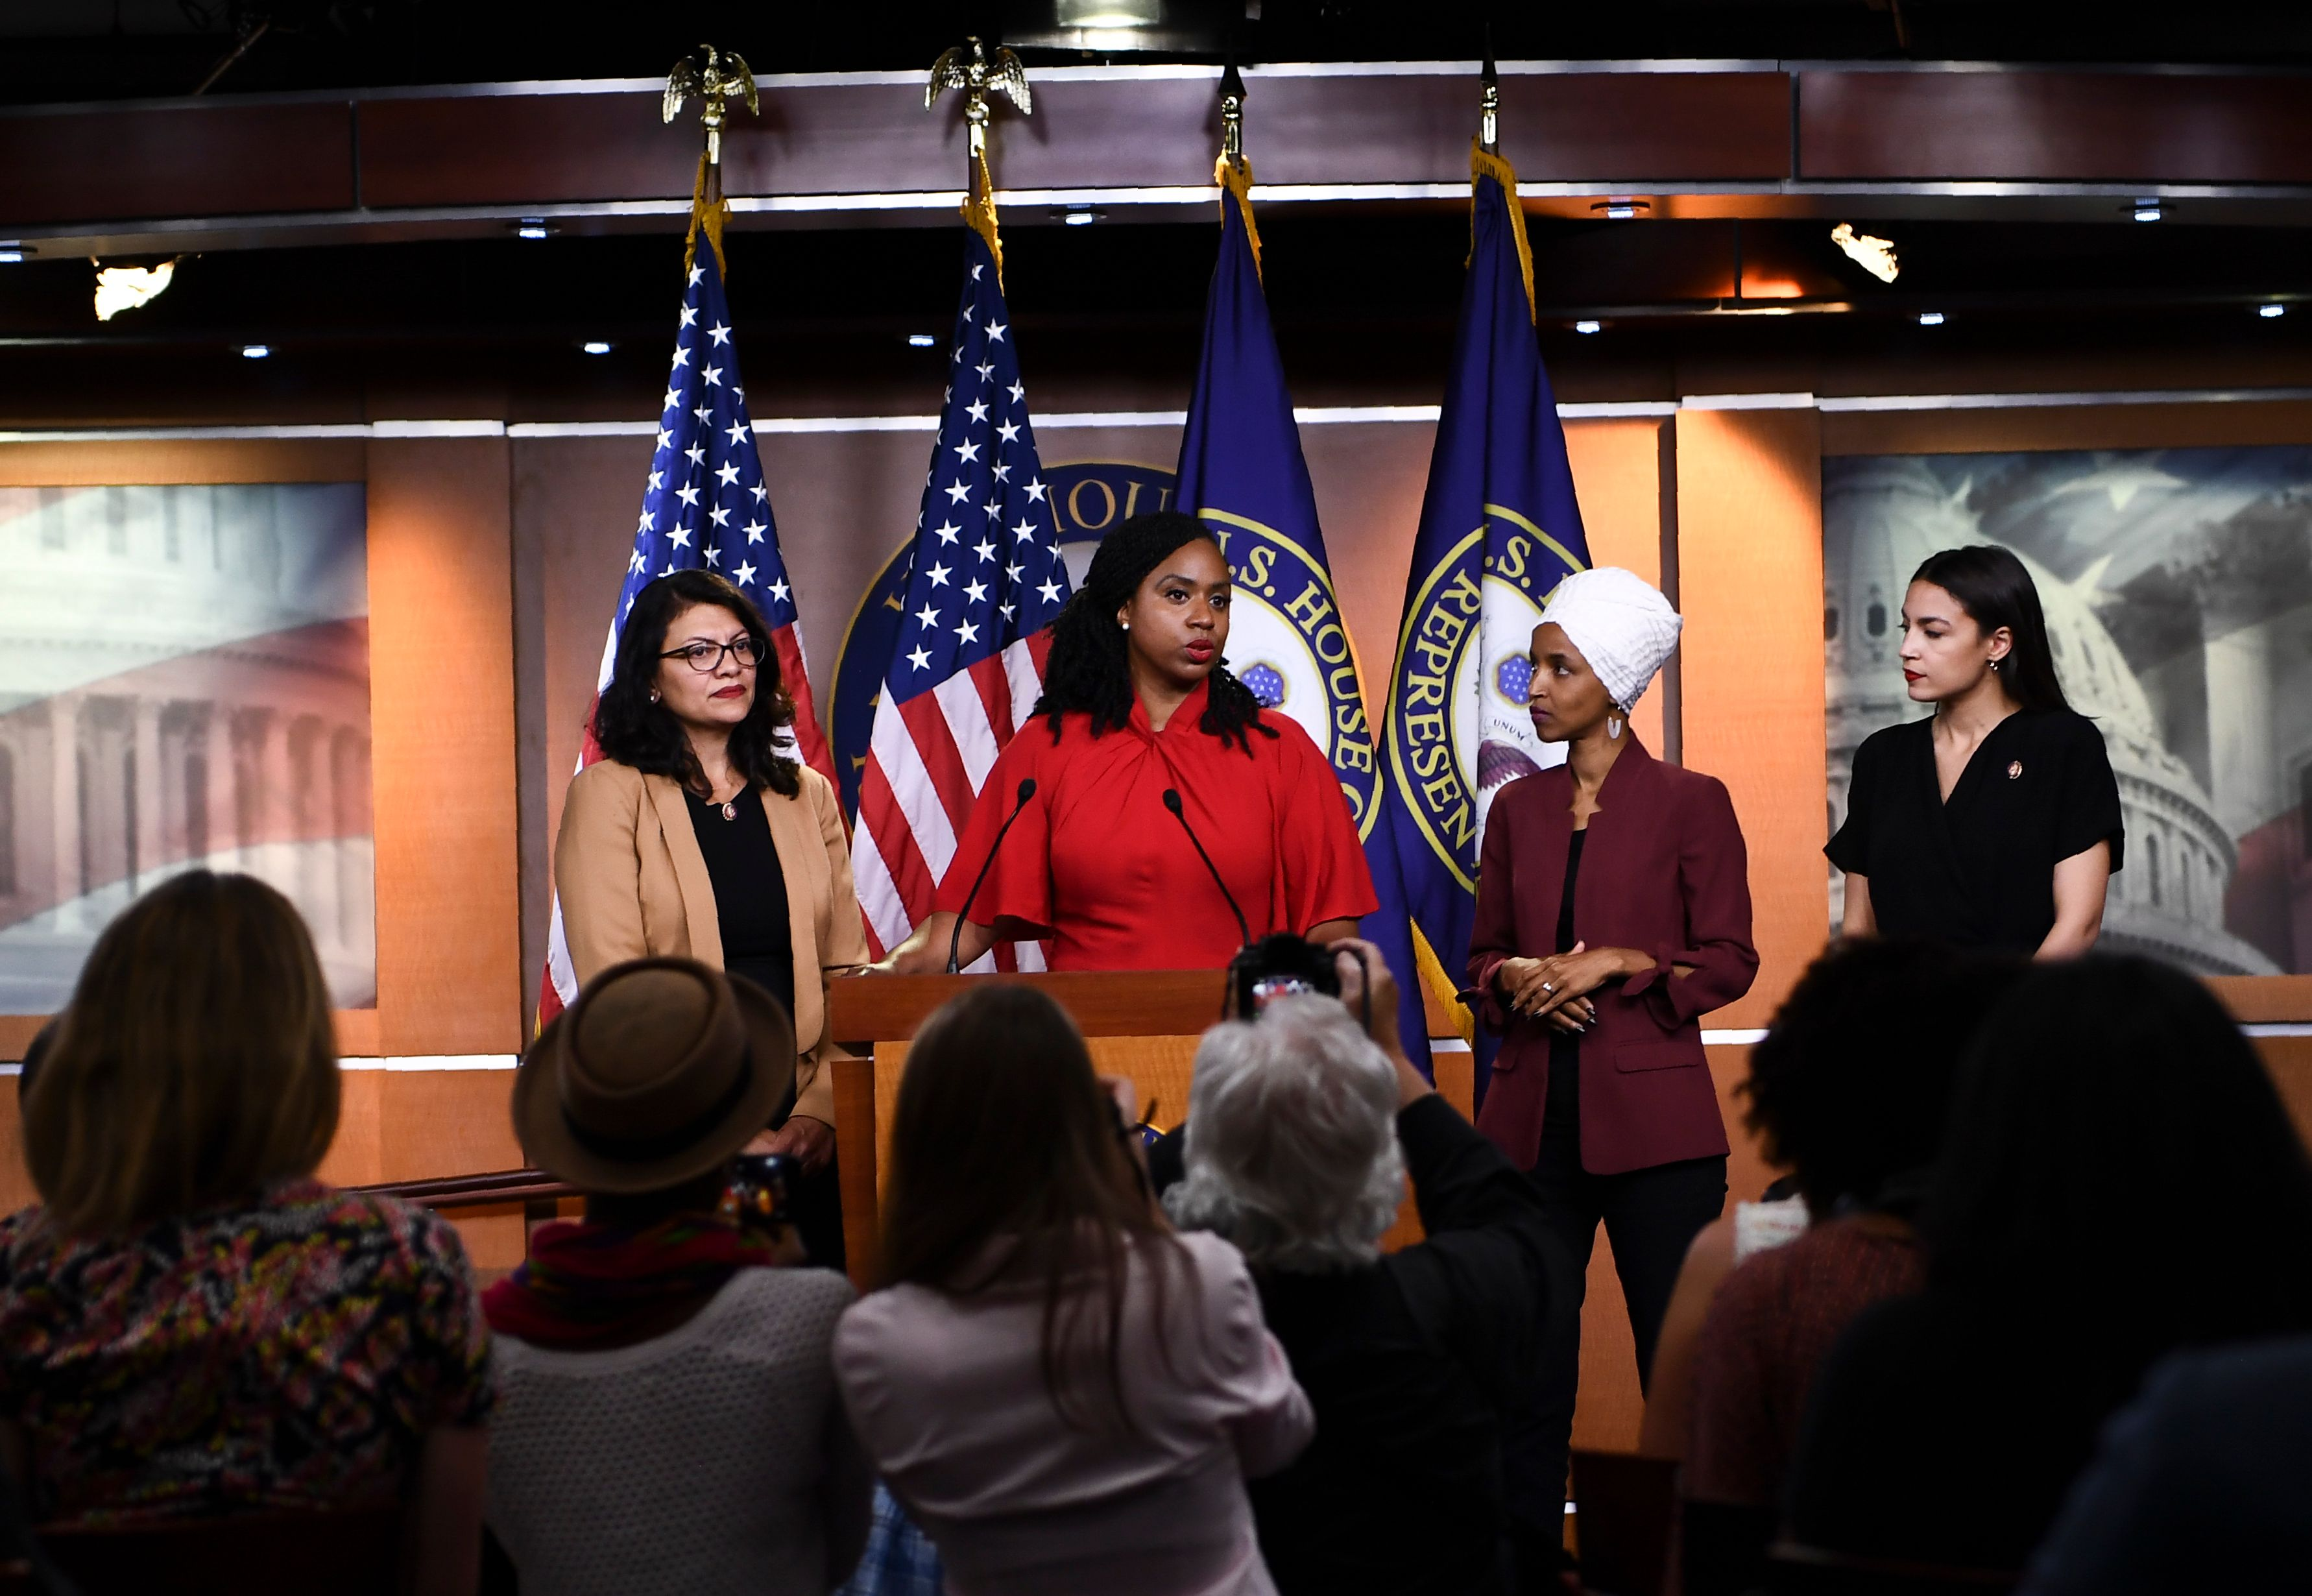 US Representatives Ayanna Pressley speaks as, Ilhan Omar, Rashida Tlaib, and Alexandria Ocasio-Cortez look on during a press conference, to address remarks made by US President Donald Trump earlier in the day, at the US Capitol in Washington, DC on July 15, 2019.(BRENDAN SMIALOWSKI/AFP/Getty Images)